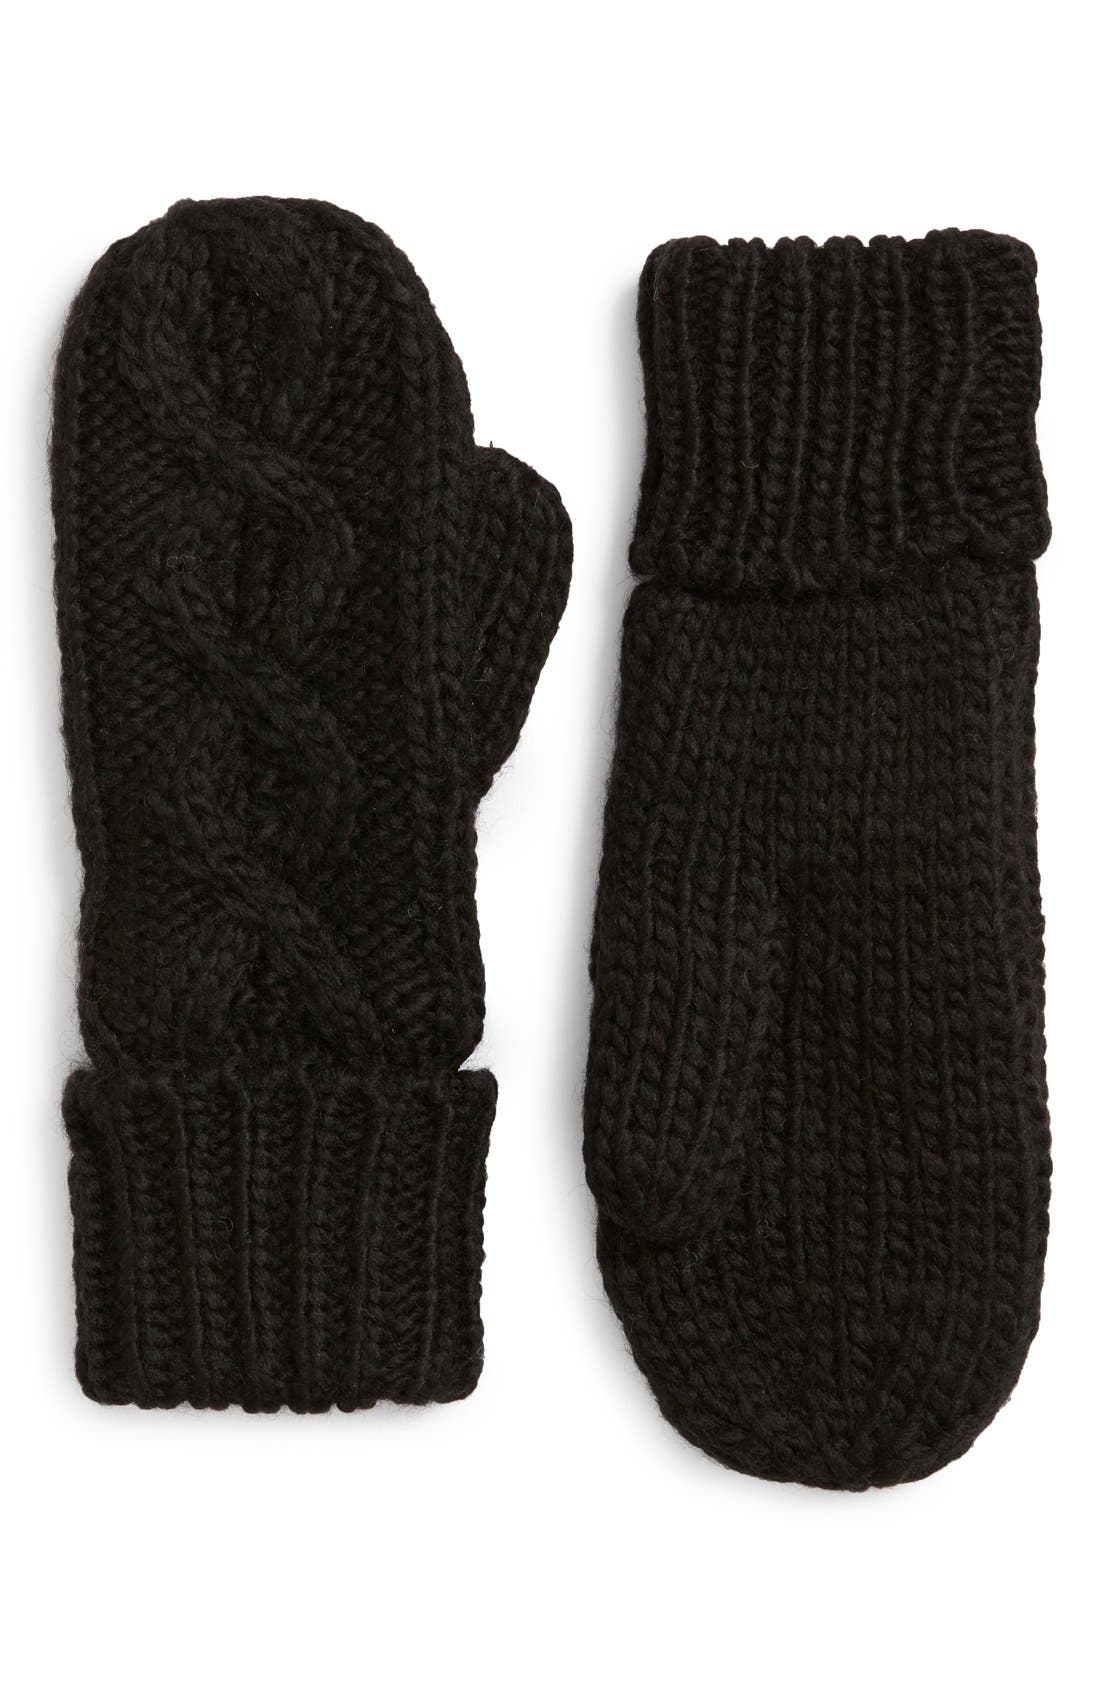 RELLA,                             'Betto' Cable Knit Mittens,                             Main thumbnail 1, color,                             001